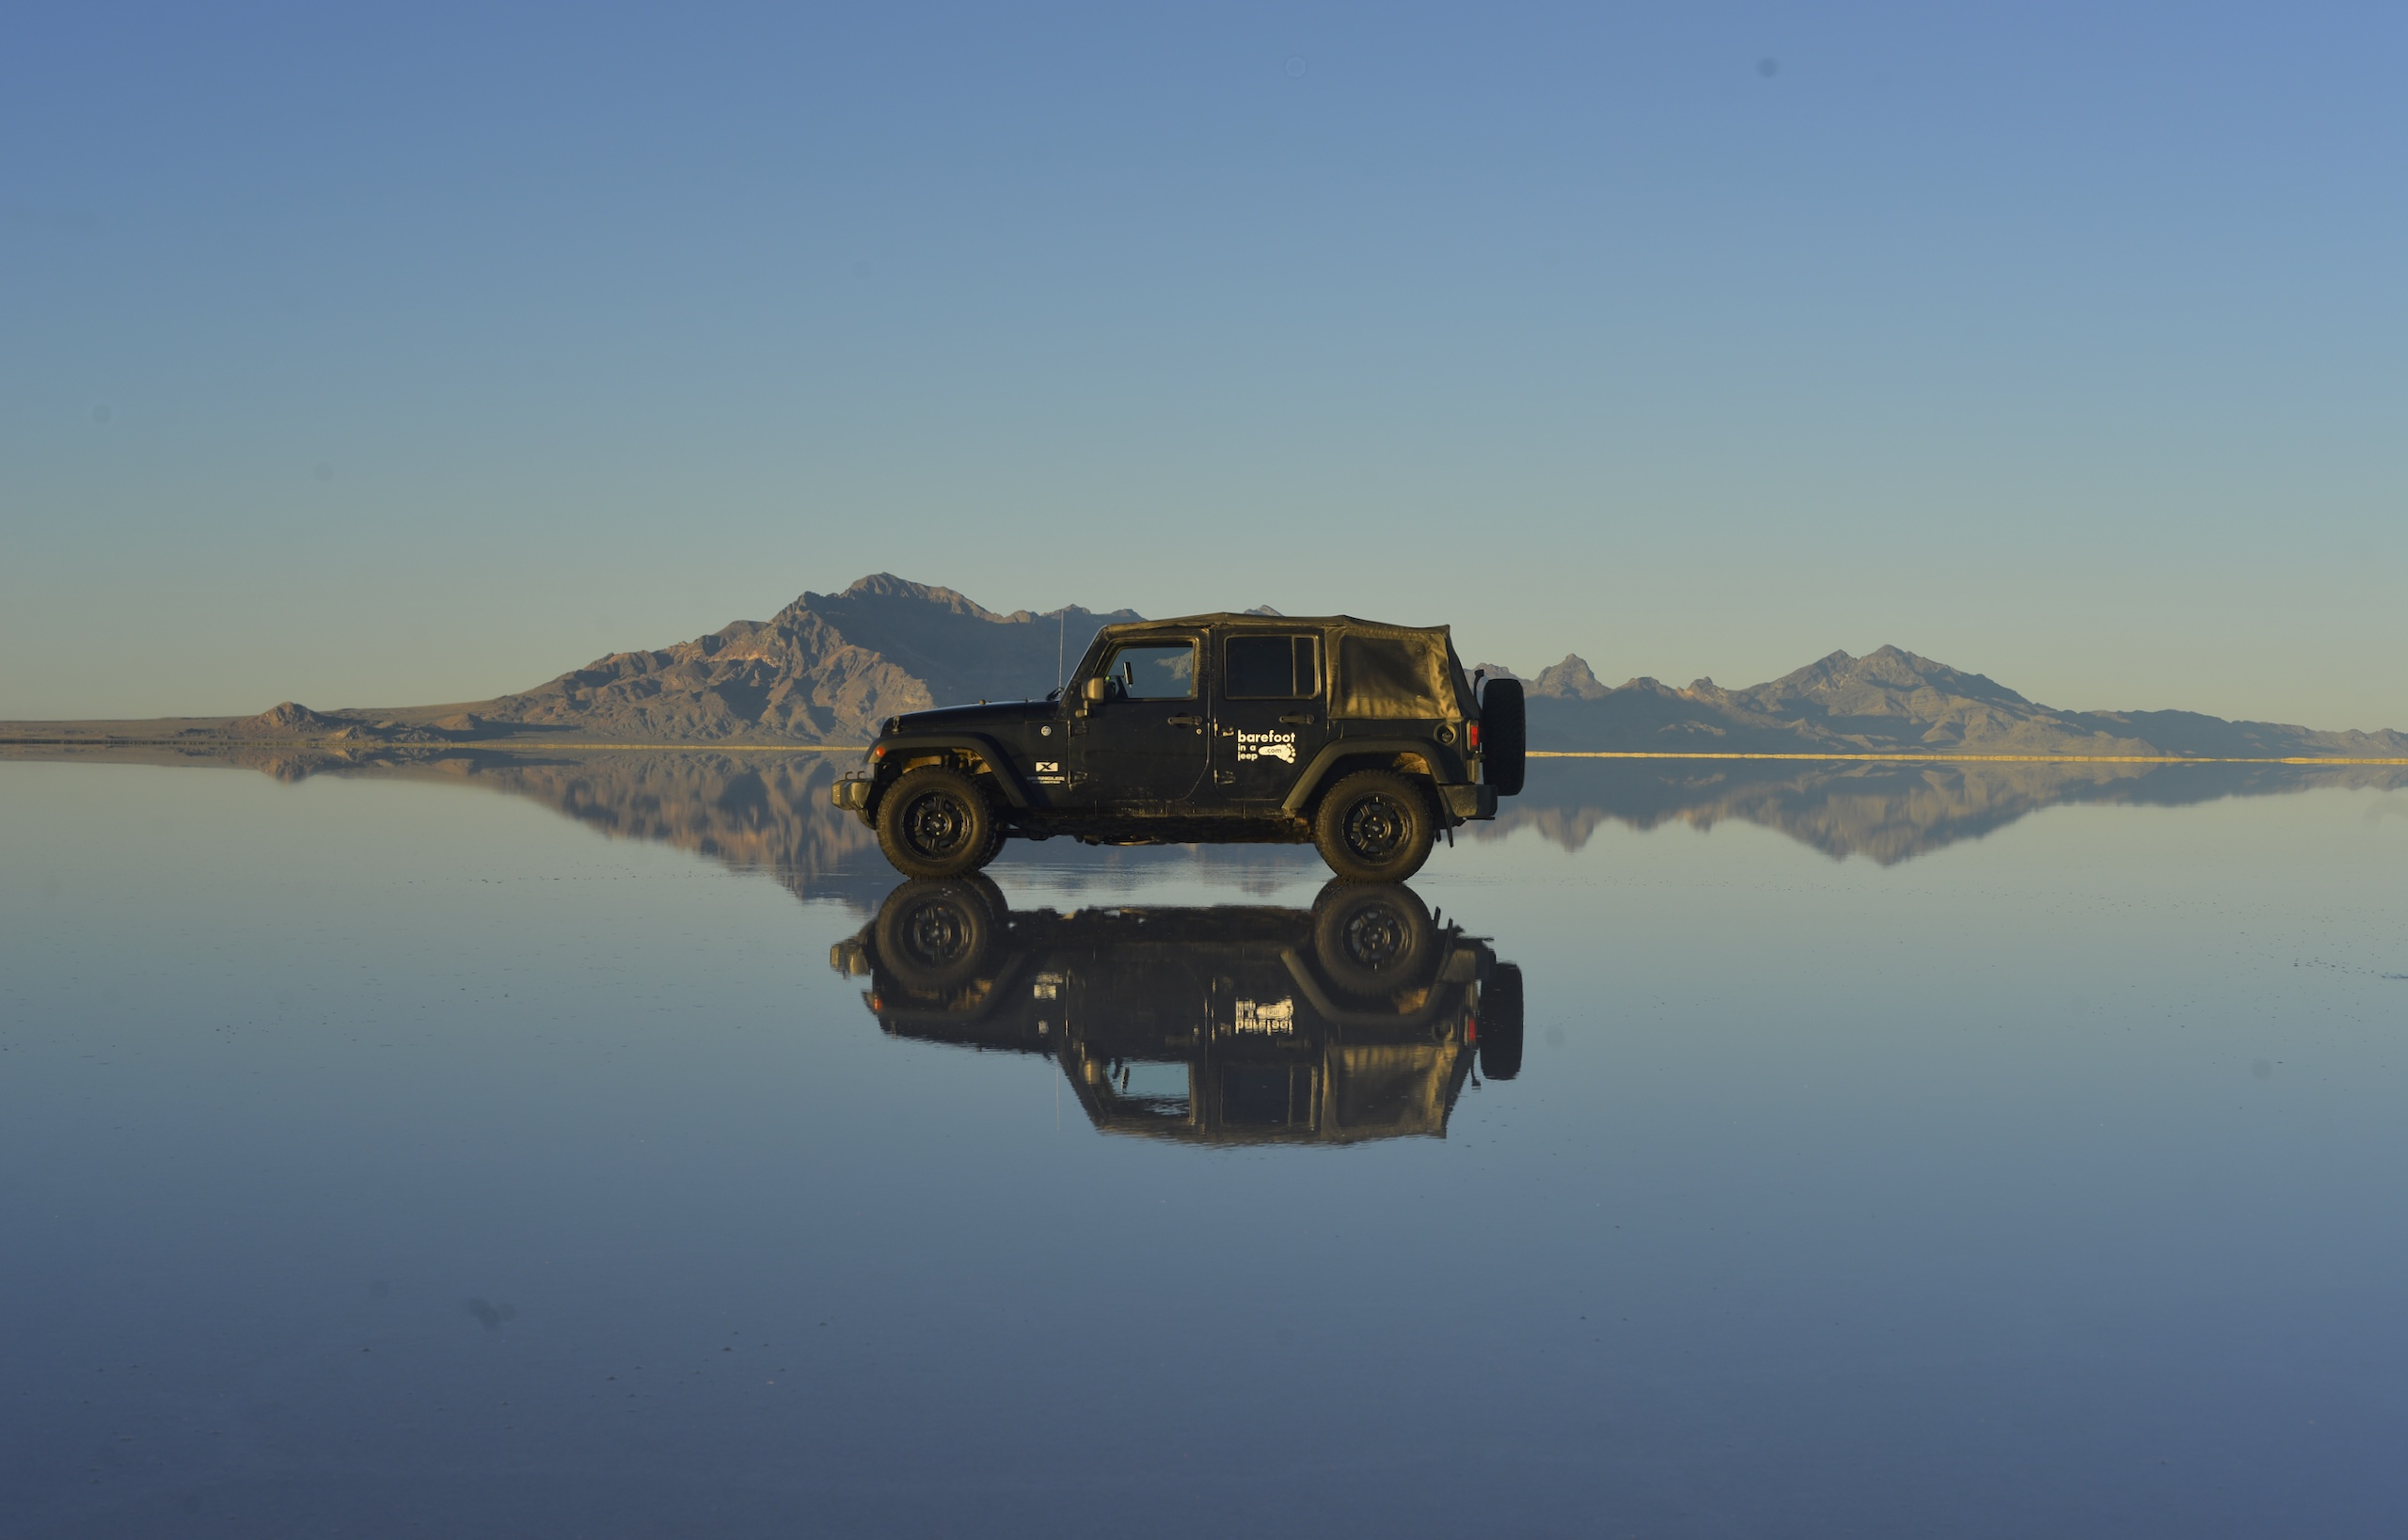 Jean-Pascal Remon's Jeep Wrangler